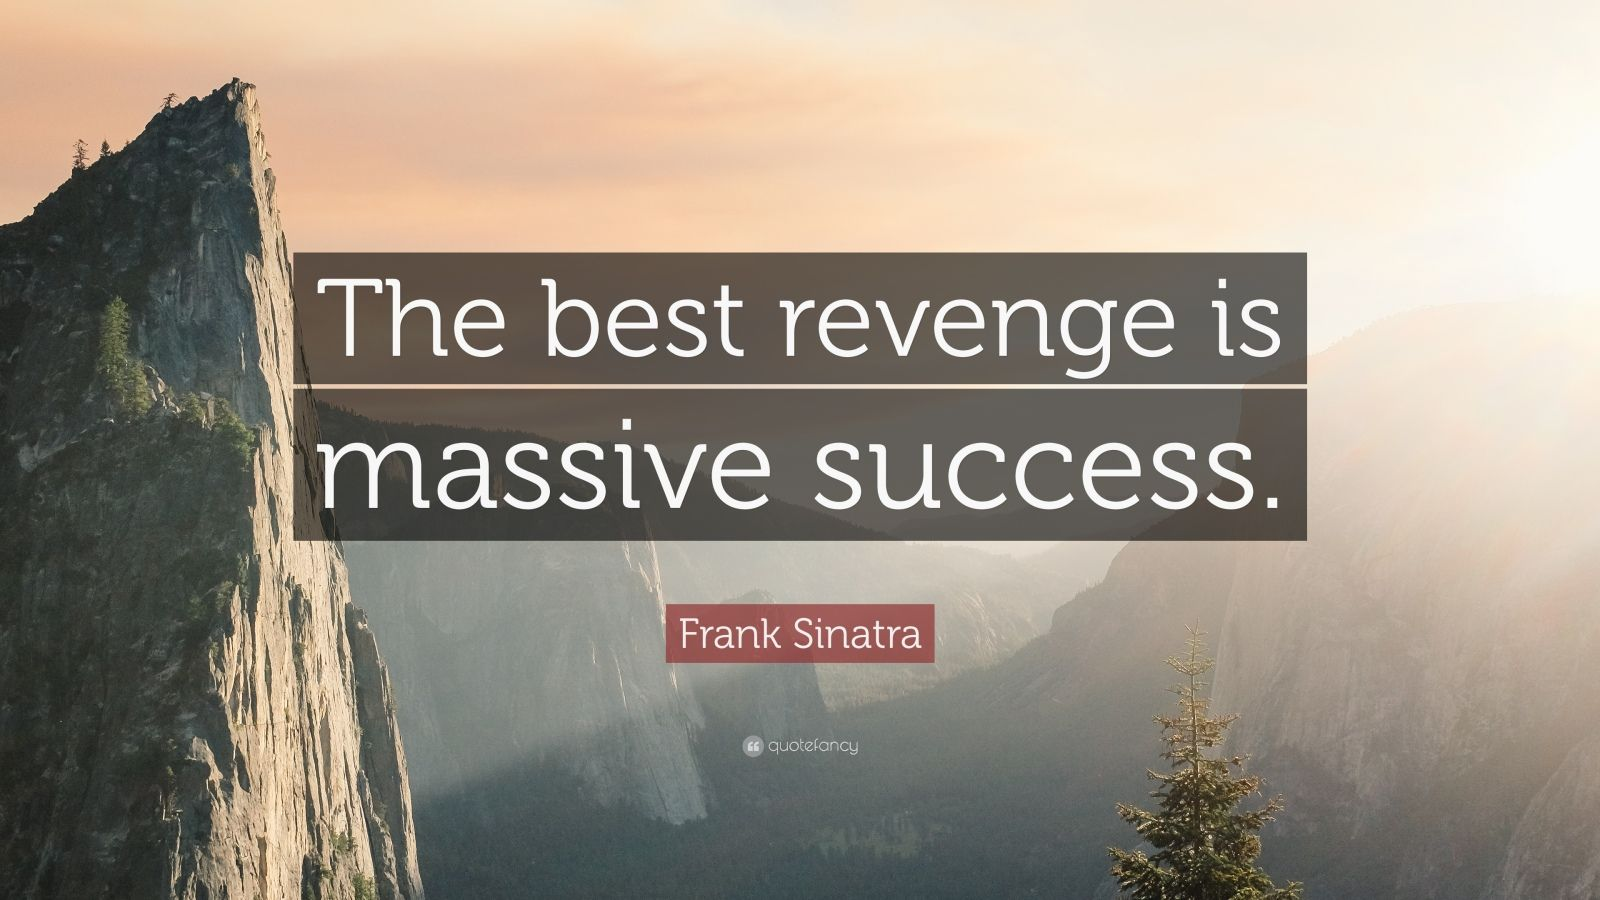 Theodore Roosevelt Wallpaper Quote Frank Sinatra Quote The Best Revenge Is Massive Success